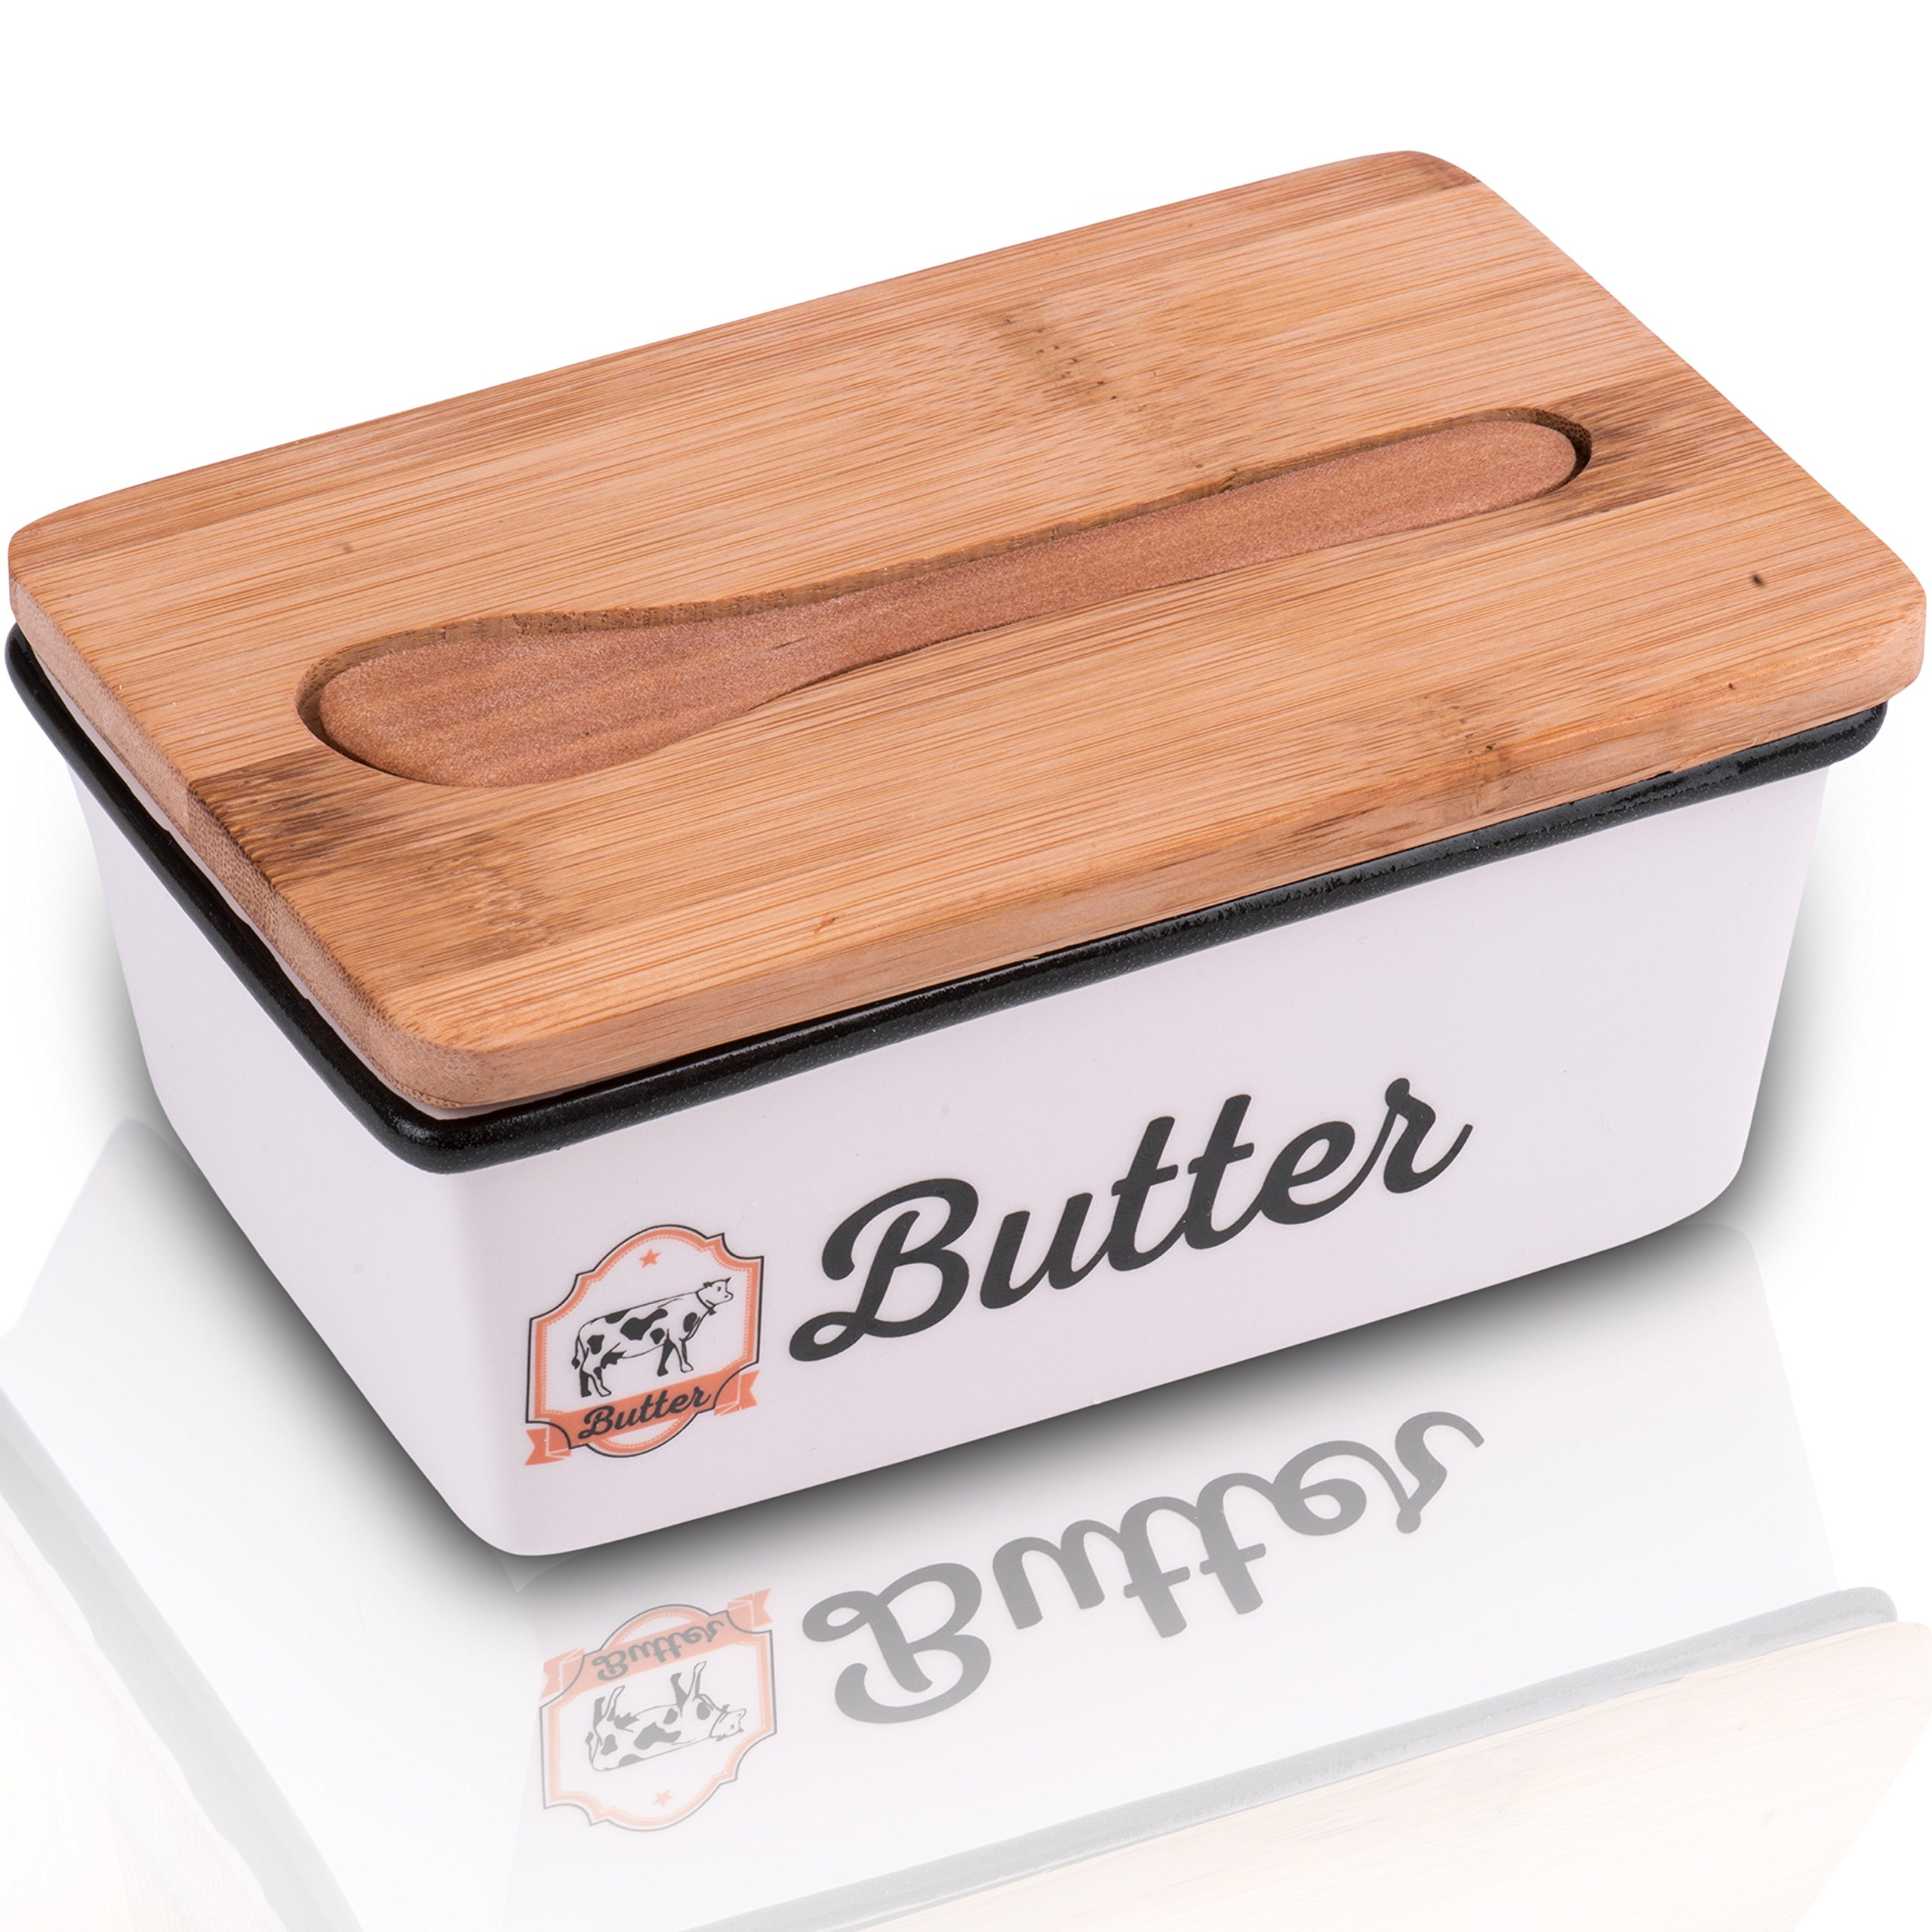 Adirom Butter Dish , Butter Dish with Lid - Elegant Porcelain Butter crock with Bamboo Cover Keeps Your Butter Fresh, Clean and Flavorful ,BONUS- Bamboo Spoon - Get Your Best Butter Holder